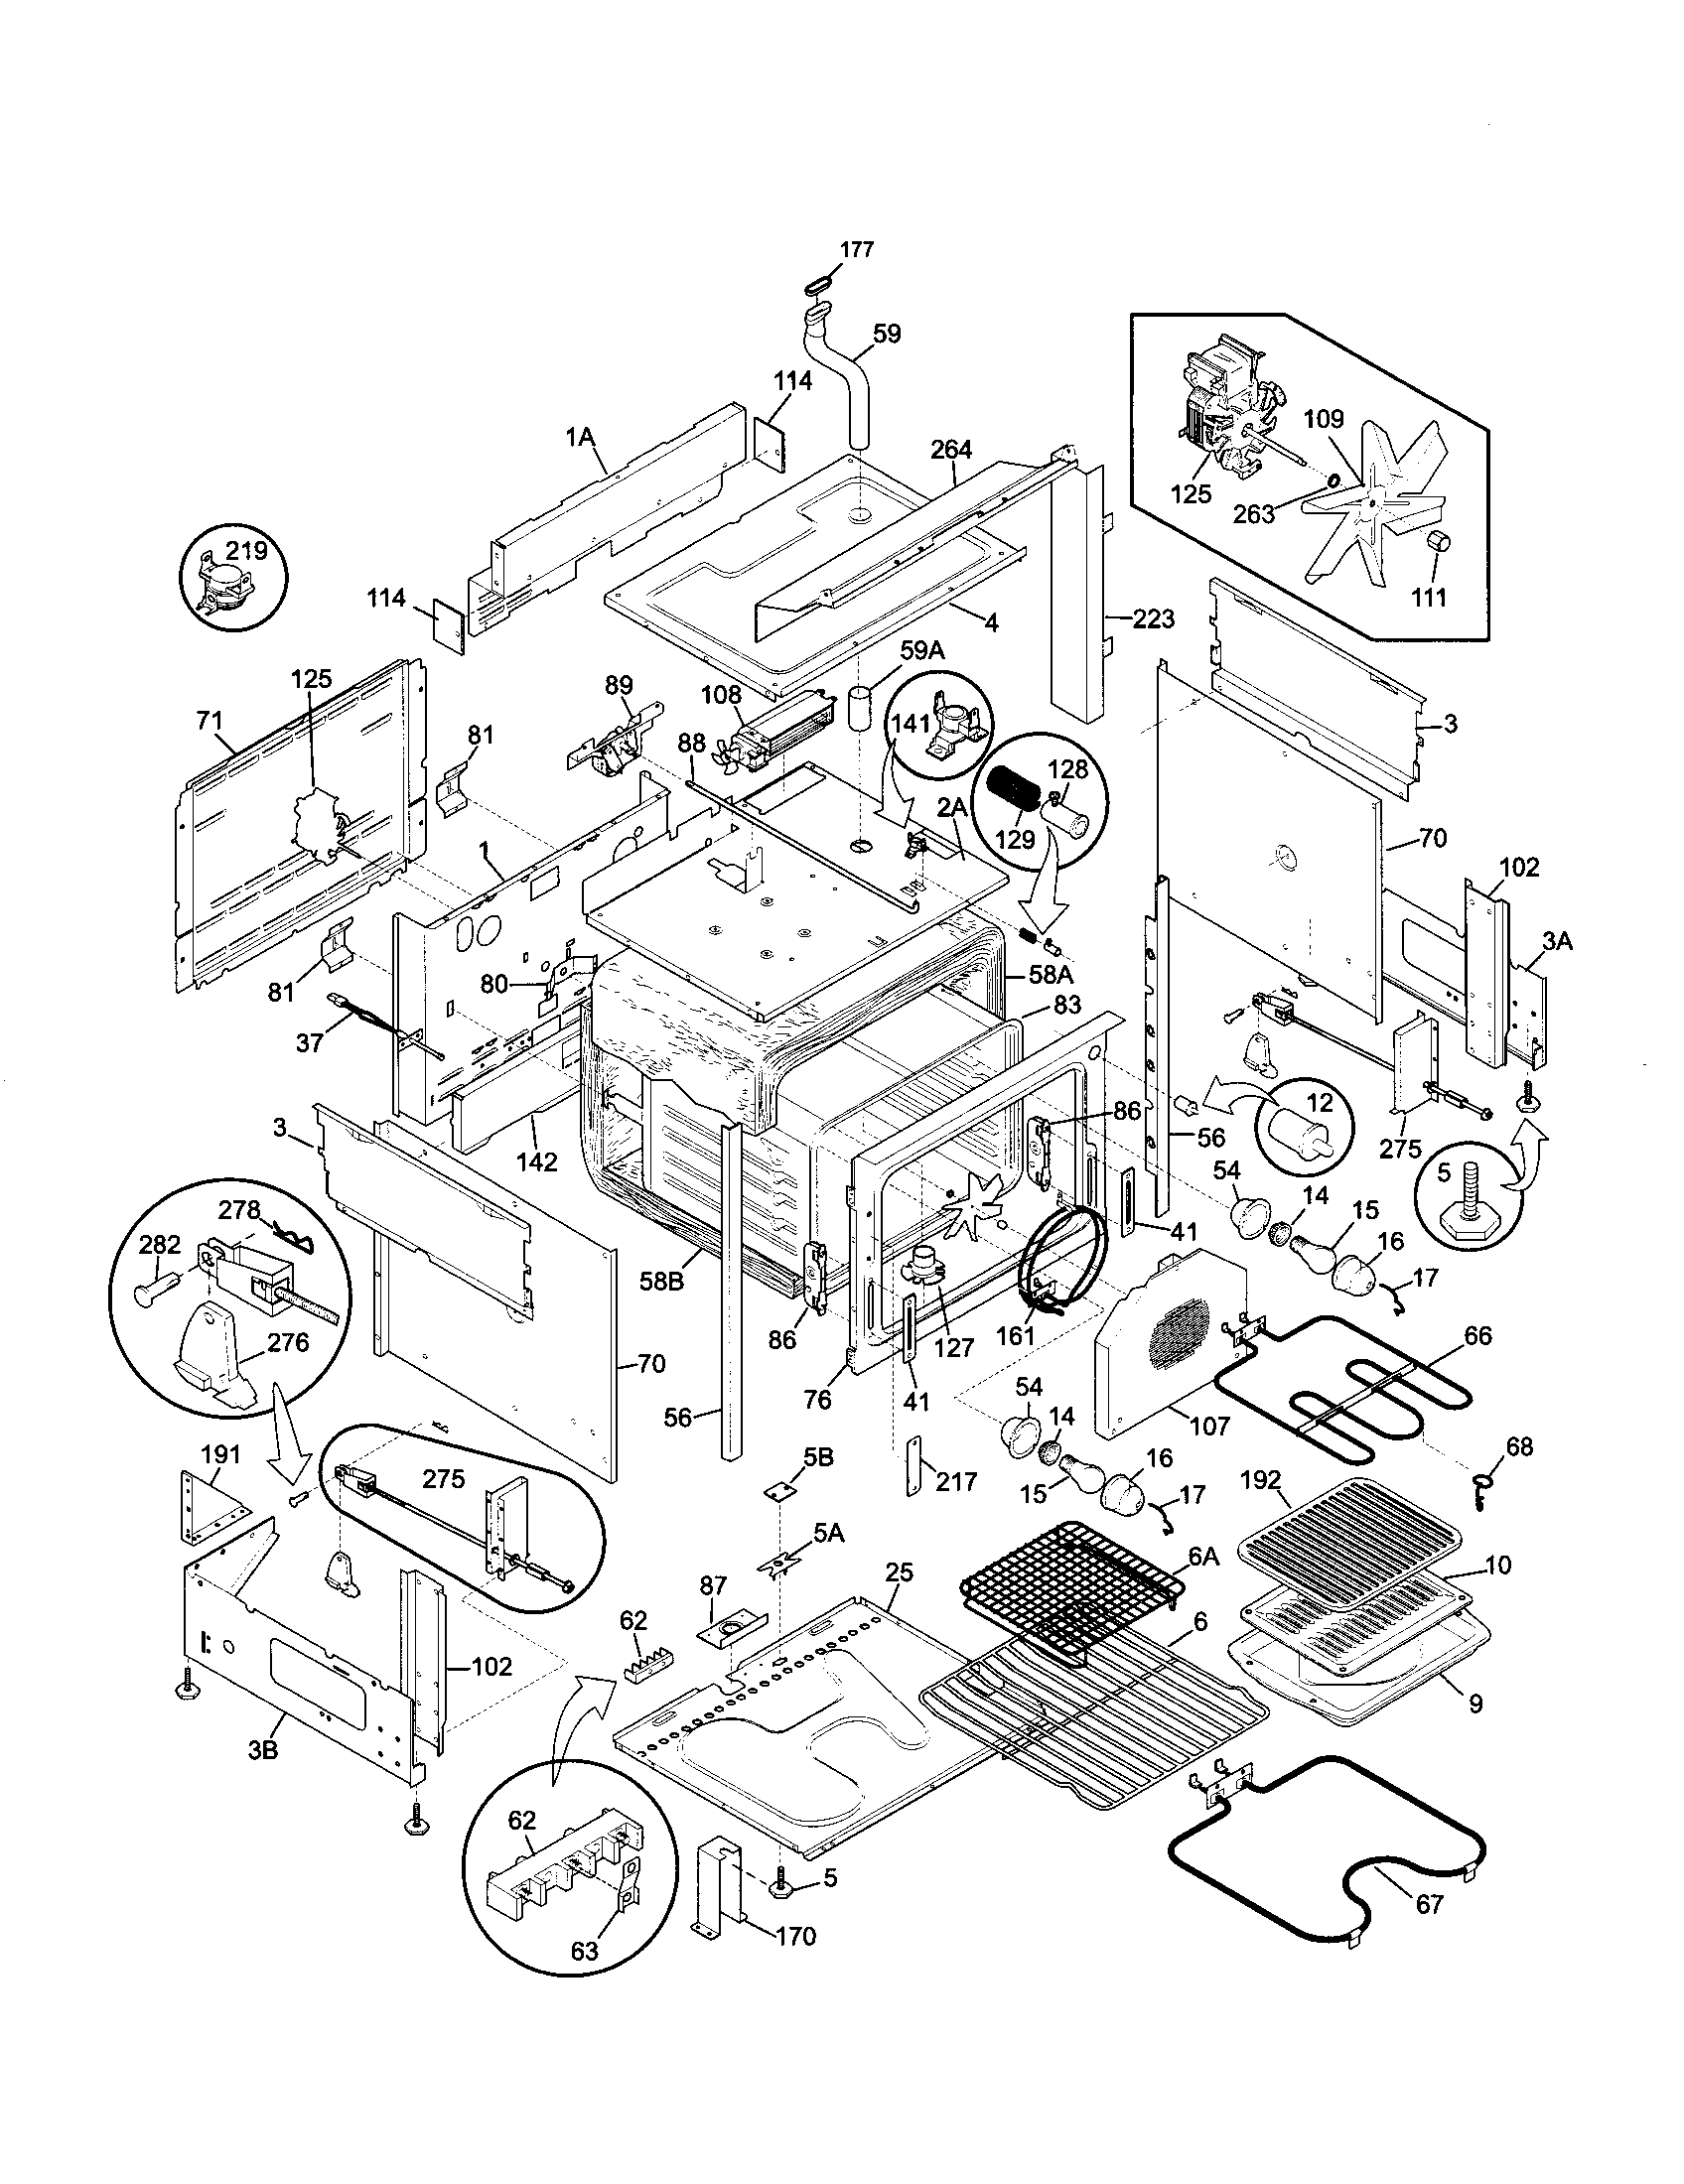 watch more like kenmore washing machine diagram kenmore washer wiring diagram kenmore circuit diagrams